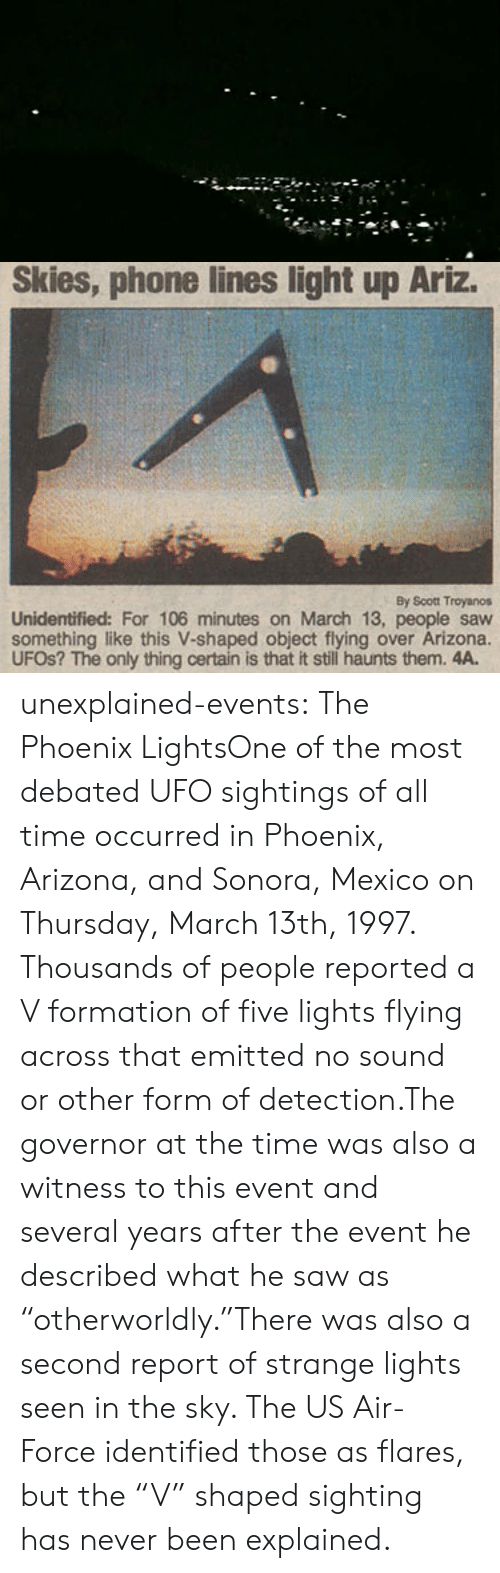 """Air Force: Skies, phone lines light up Ariz.  By Scott Troyanos  Unidentified: For 106 minutes on March 13, people saw  something like this V-shaped object flying over Arizona.  UFOS? The only thing certain is that it still haunts them. 4A. unexplained-events:  The Phoenix LightsOne of the most debated UFO sightings of all time occurred in Phoenix, Arizona, and Sonora, Mexico on Thursday, March 13th, 1997. Thousands of people reported a V formation of five lights flying across that emitted no sound or other form of detection.The governor at the time was also a witness to this event and several years after the event he described what he saw as  """"otherworldly.""""There was also a second report of strange lights seen in the sky. The US Air-Force identified those as flares, but the""""V"""" shaped sighting has never been explained."""